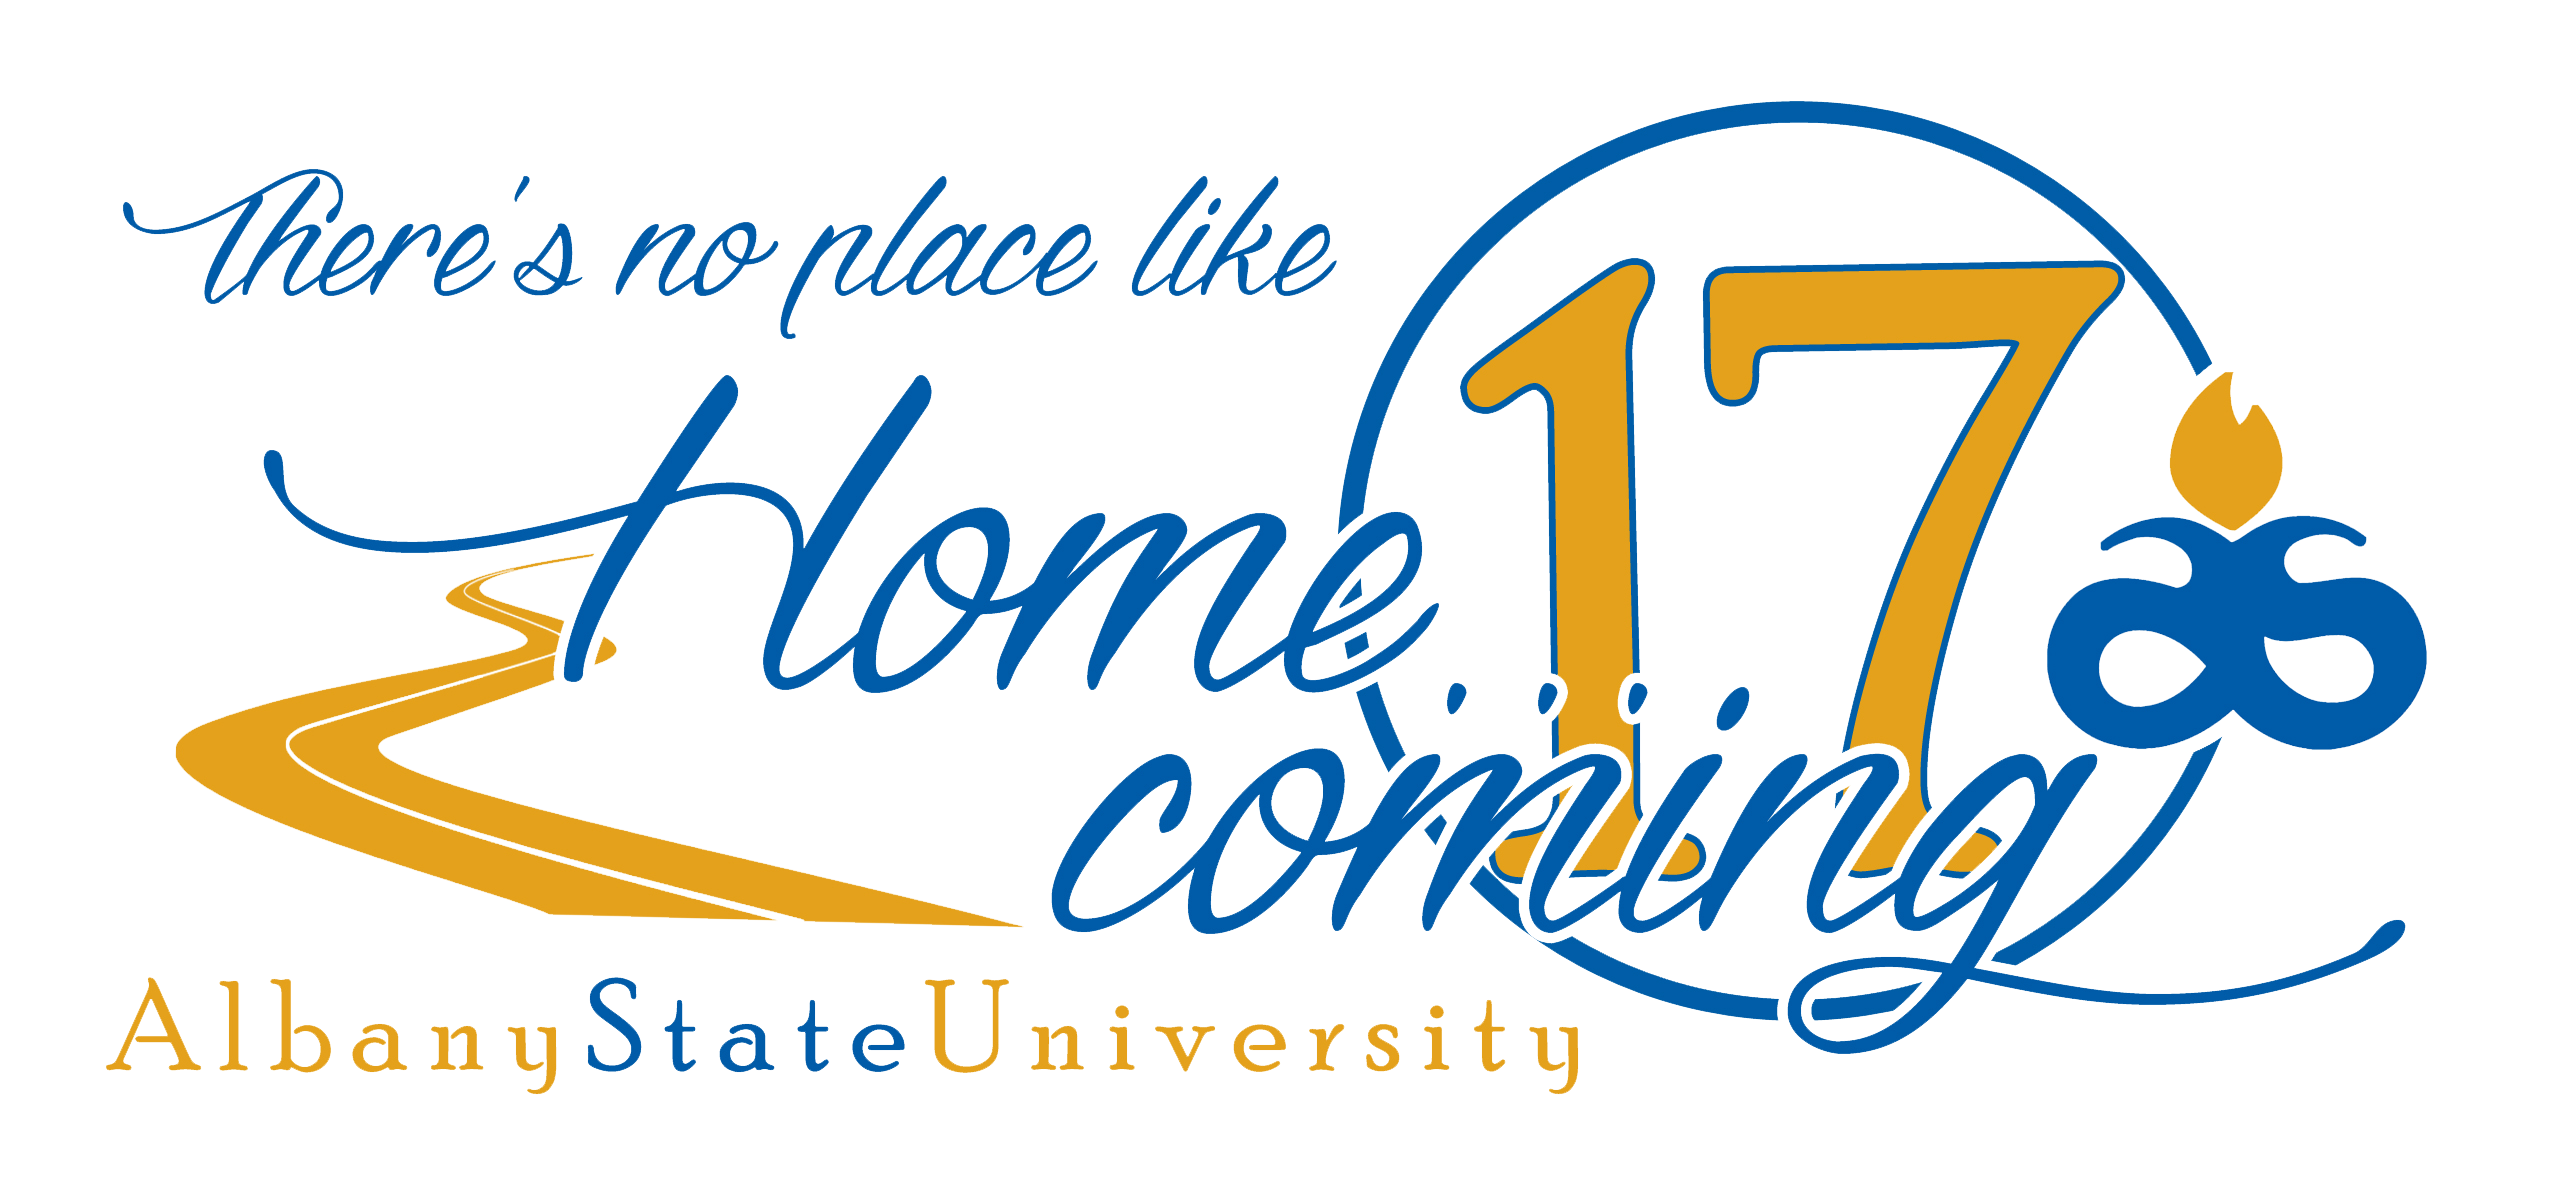 There's no place like Homecoming 17. Albany State University.